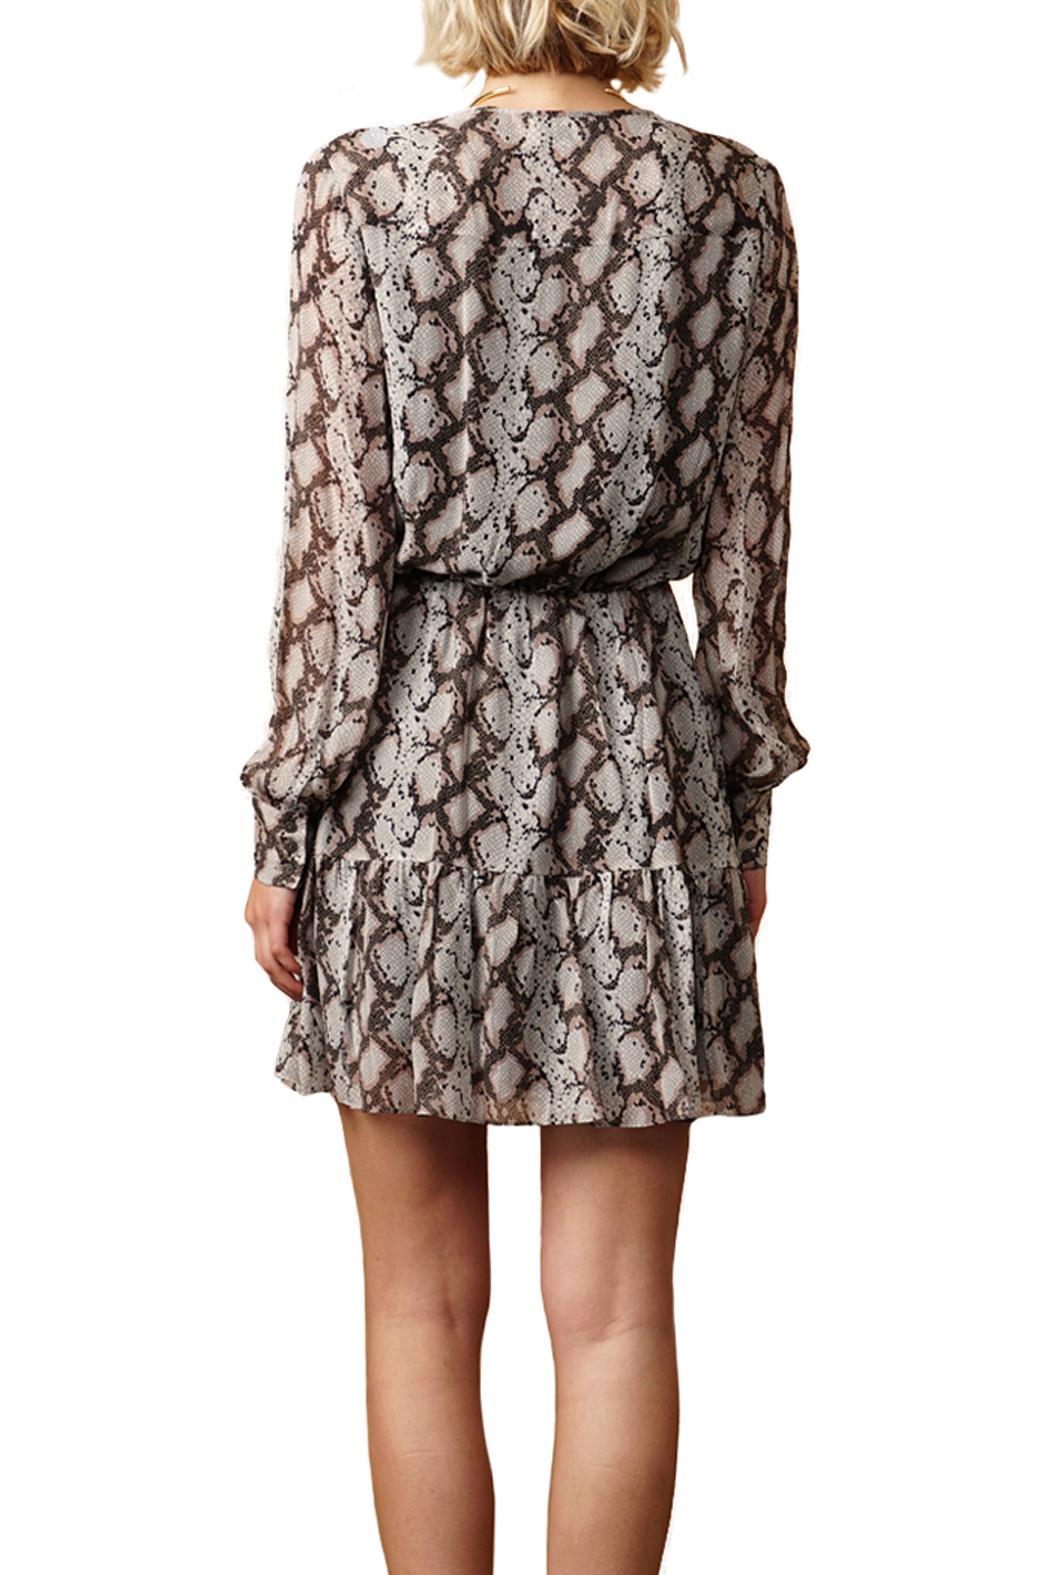 Greylin Sellia Pinktucked Dress - Side Cropped Image